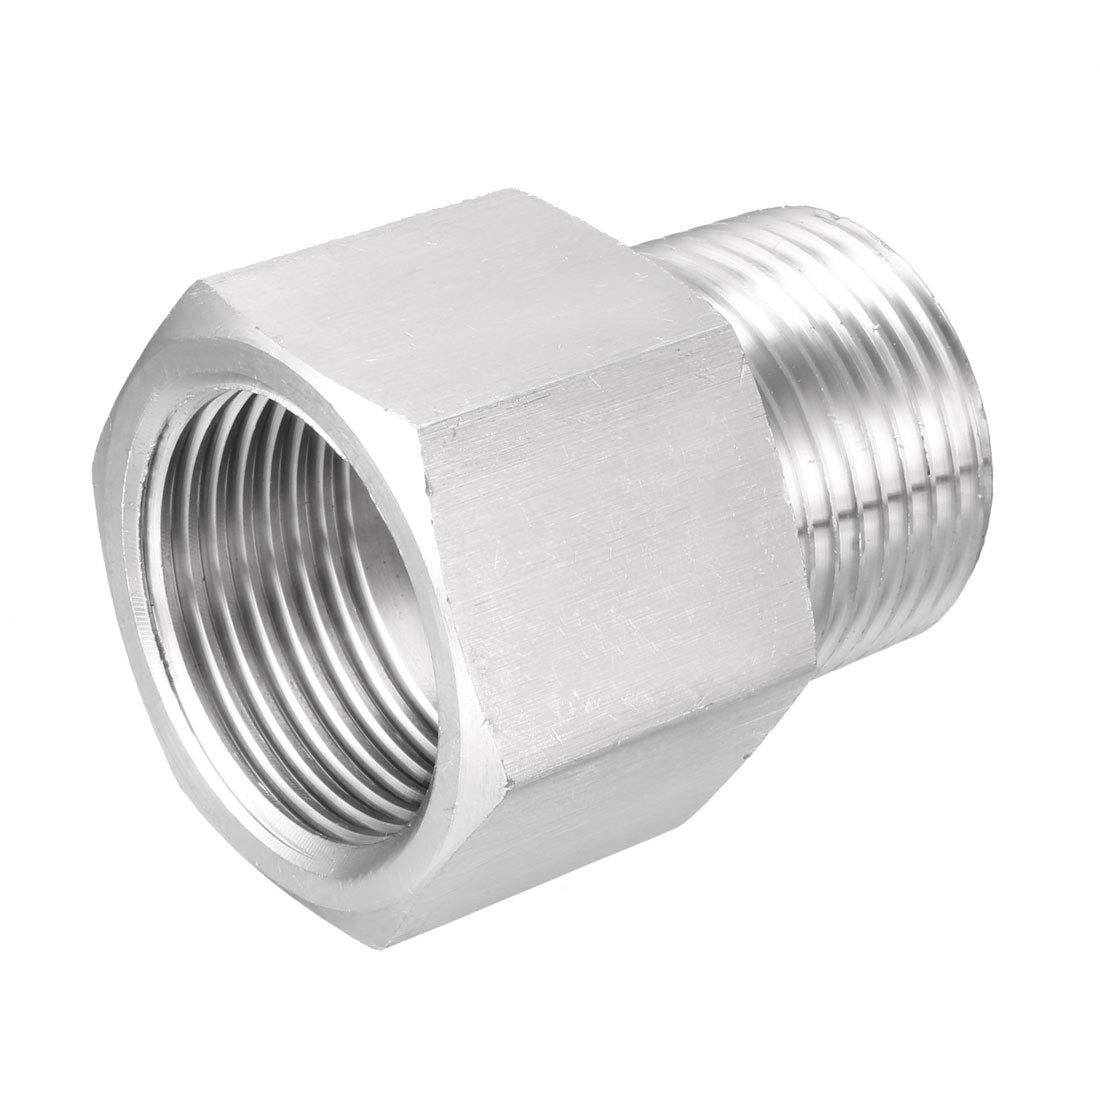 uxcell Pipe Fitting Adapter Reducing Coupling 1//8 NPT Male x 1//4 NPT Female